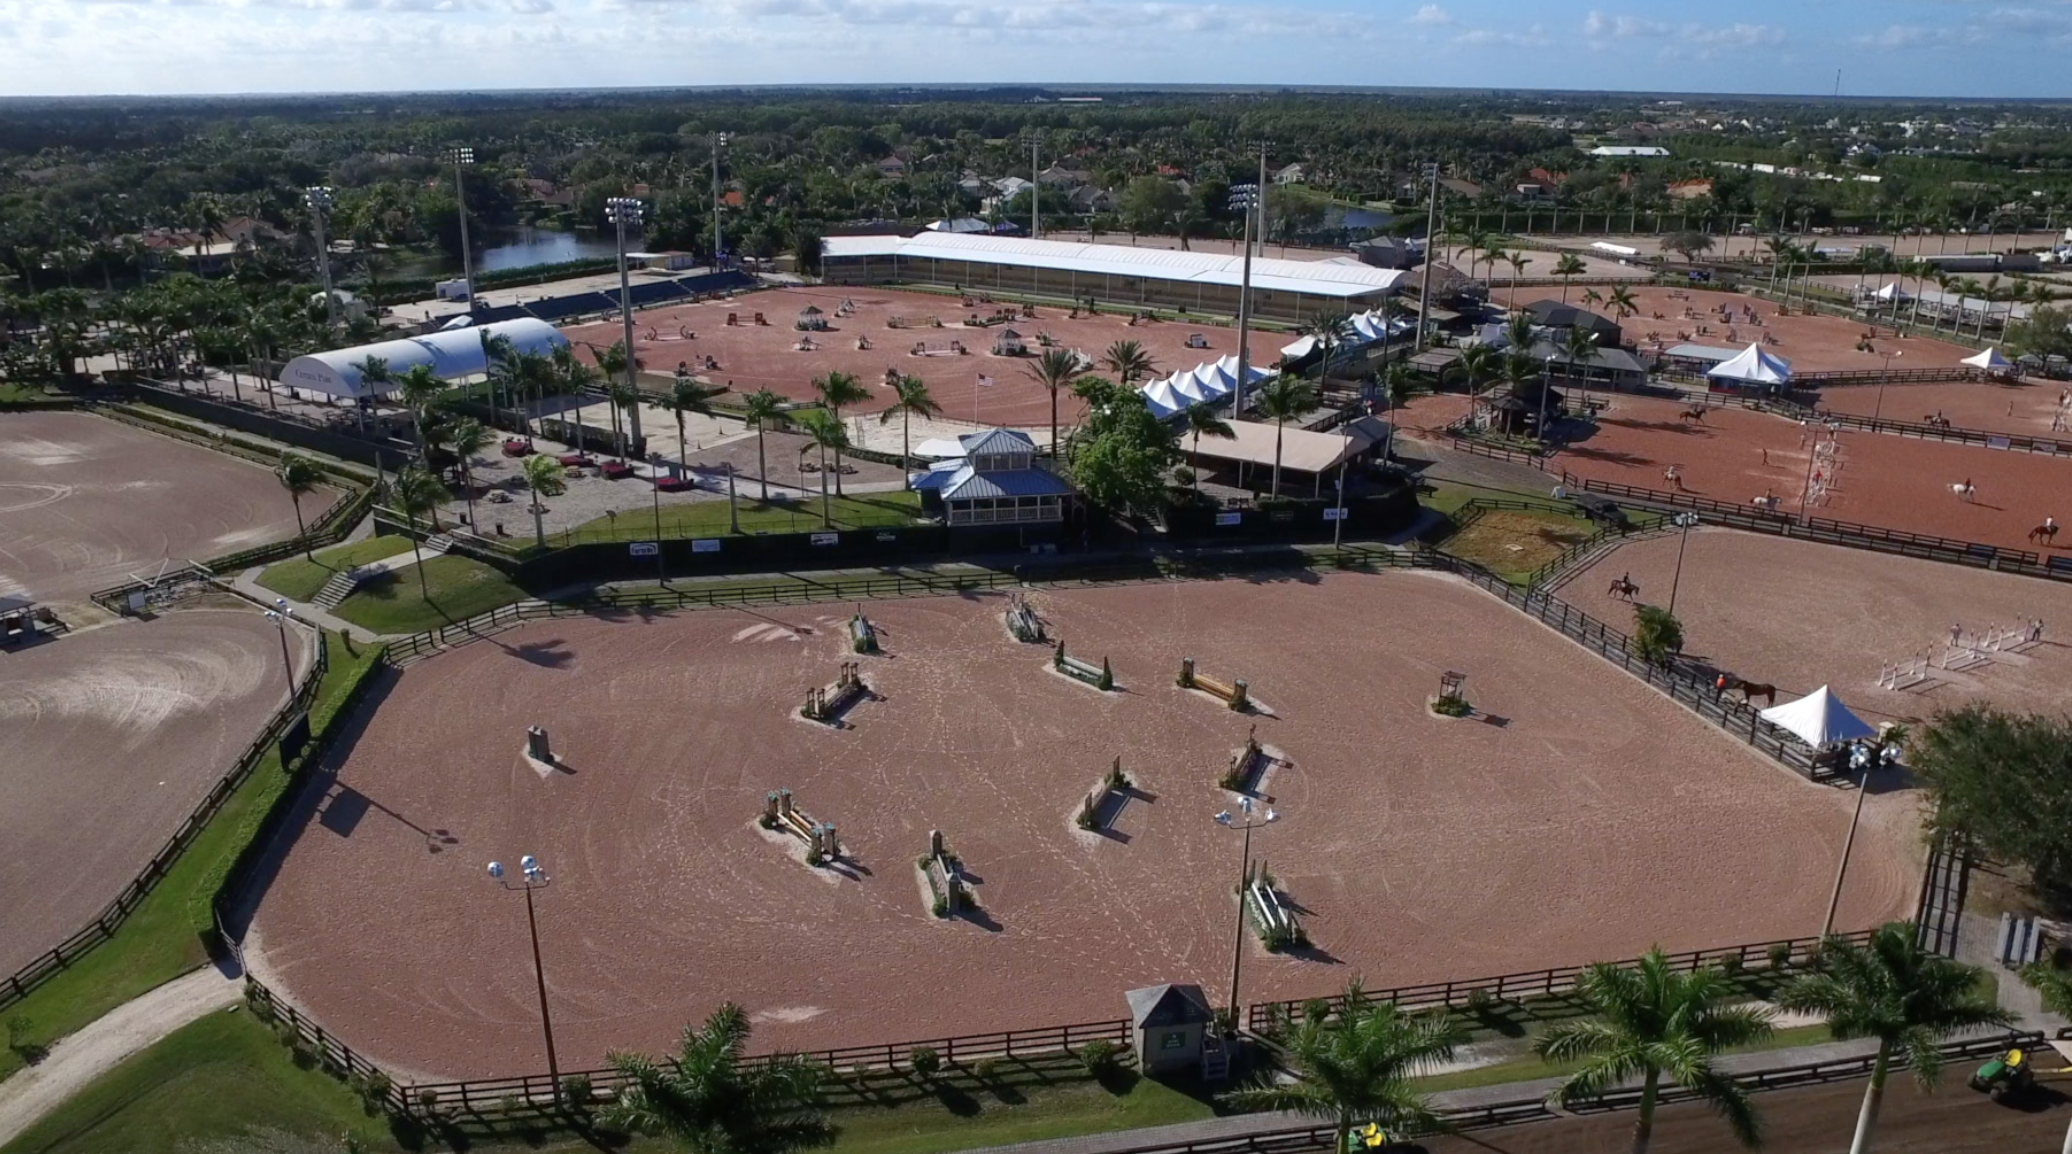 performance arenas